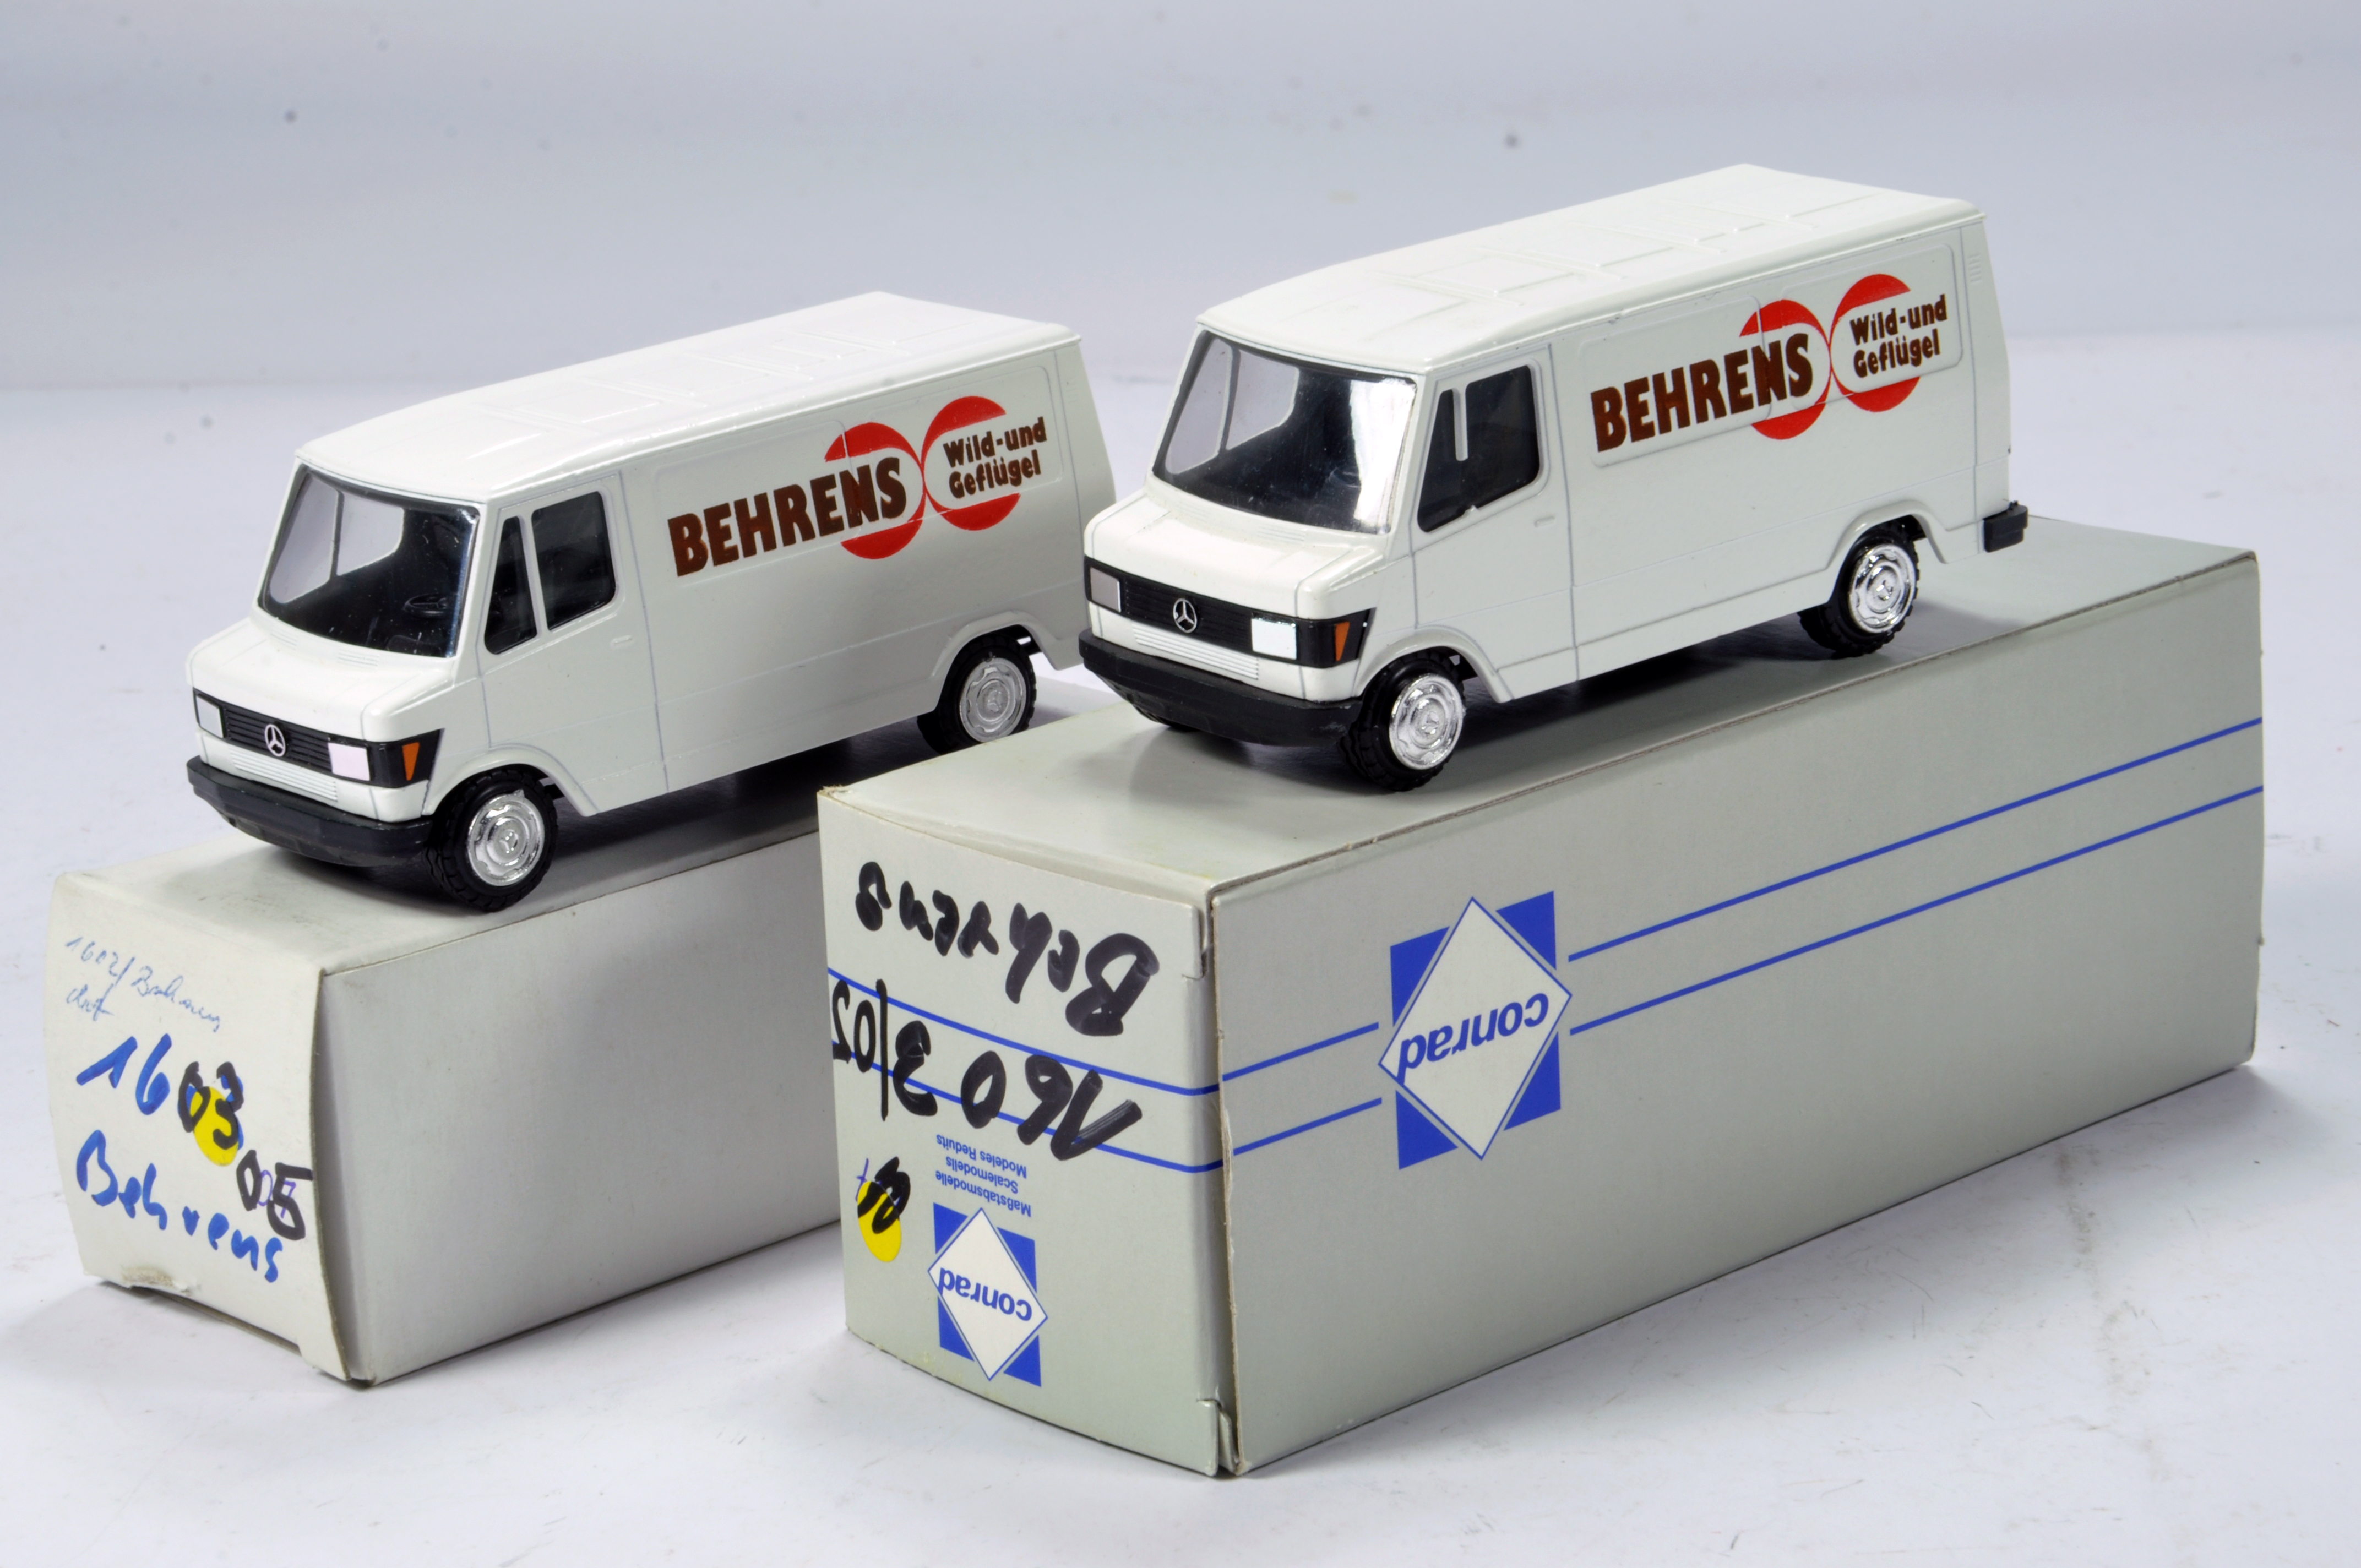 Lot 325 - Conrad 1/50 Construction Diecast No. 1603 Mercedes Benz Service Vans. Behrens. Scarce Promotional